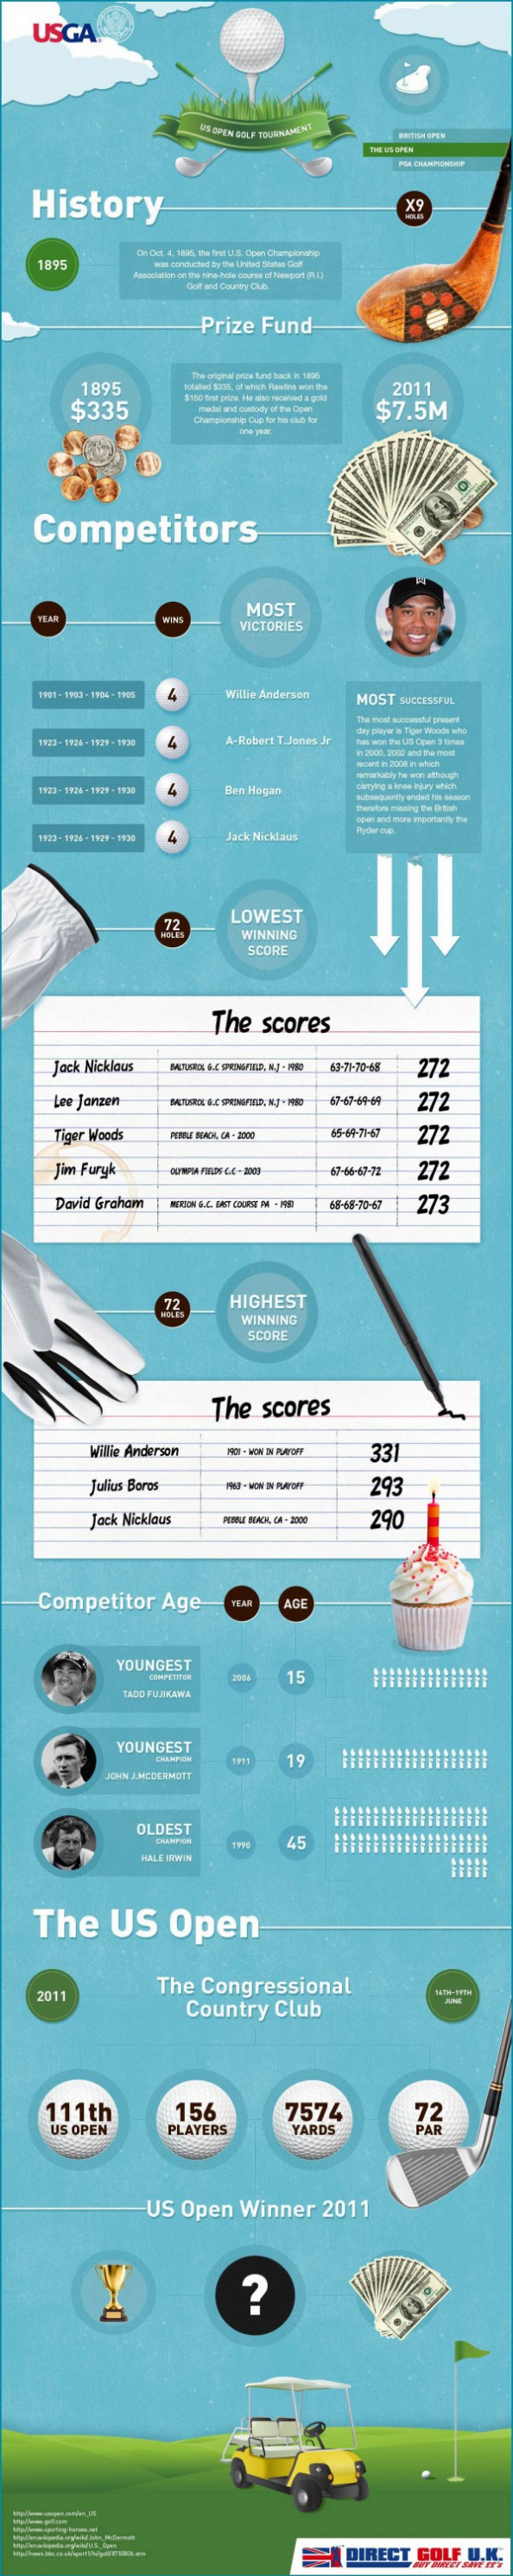 U.S Open Golf Tournament  Infographic